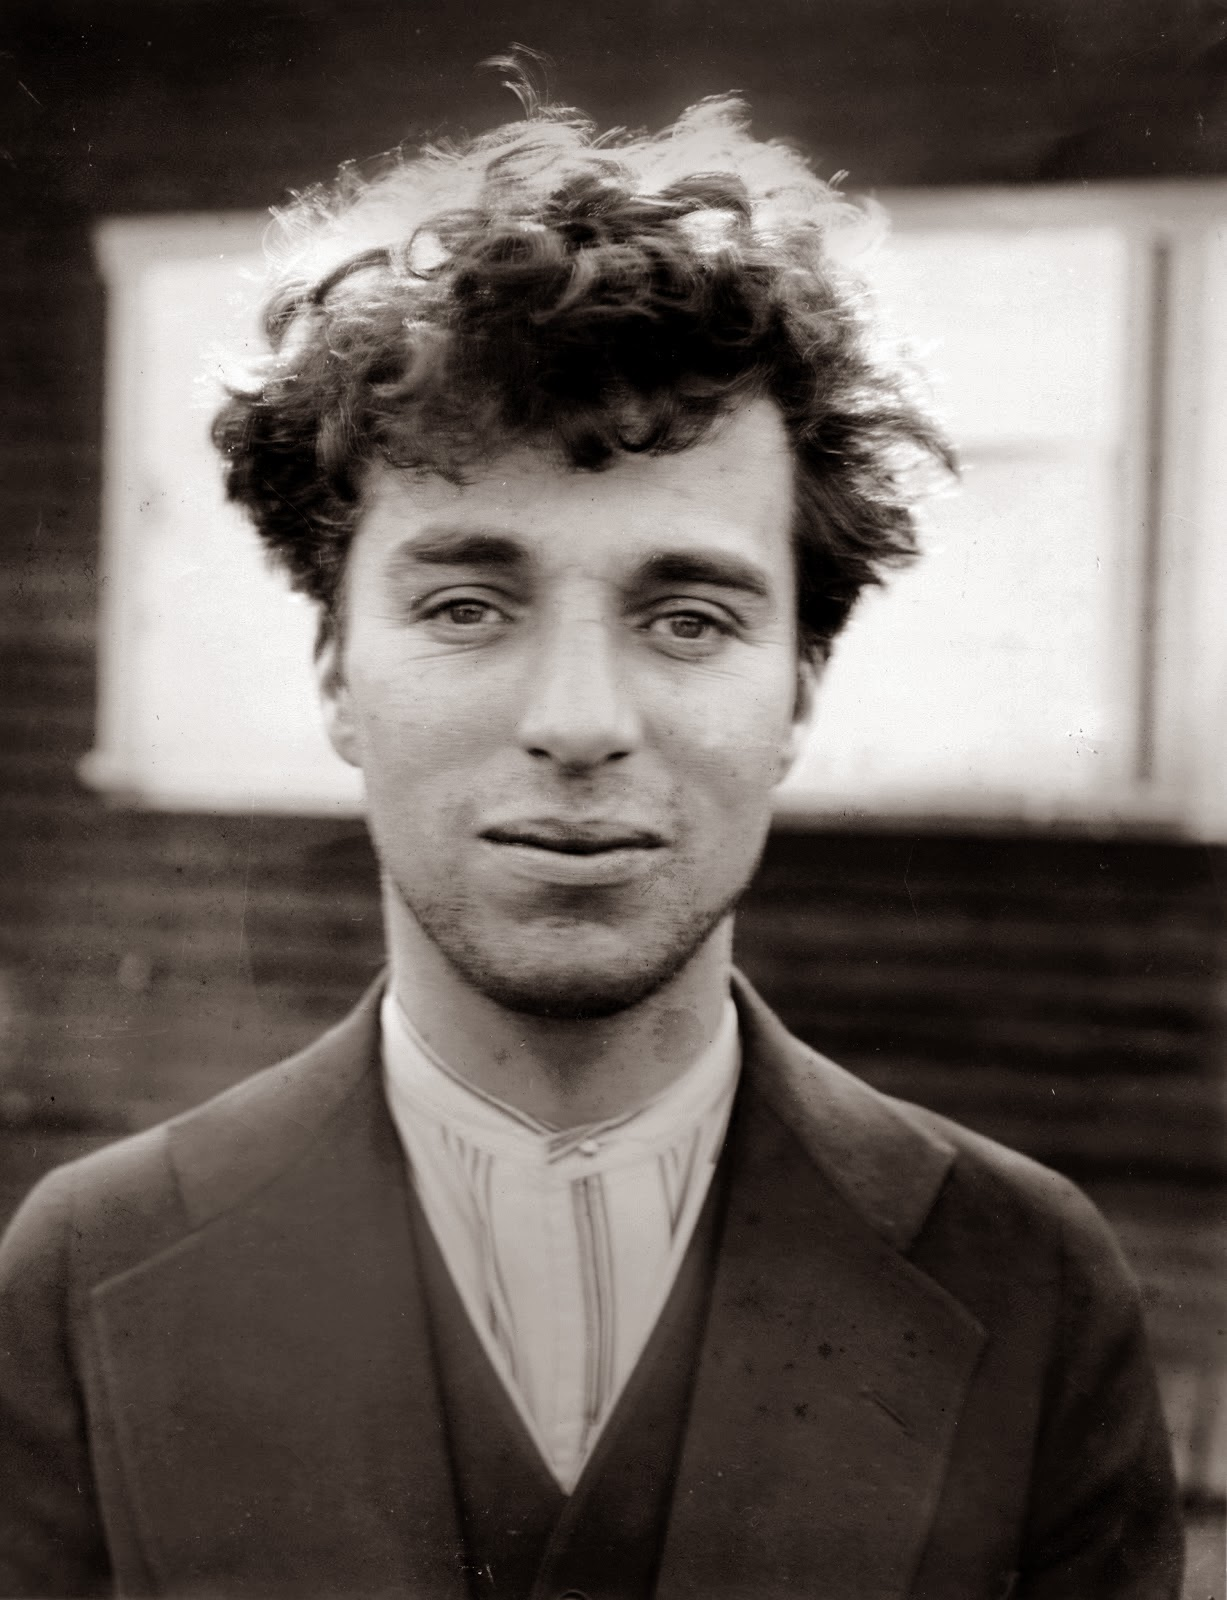 Charlie-Chaplin-Biography-Early-Life